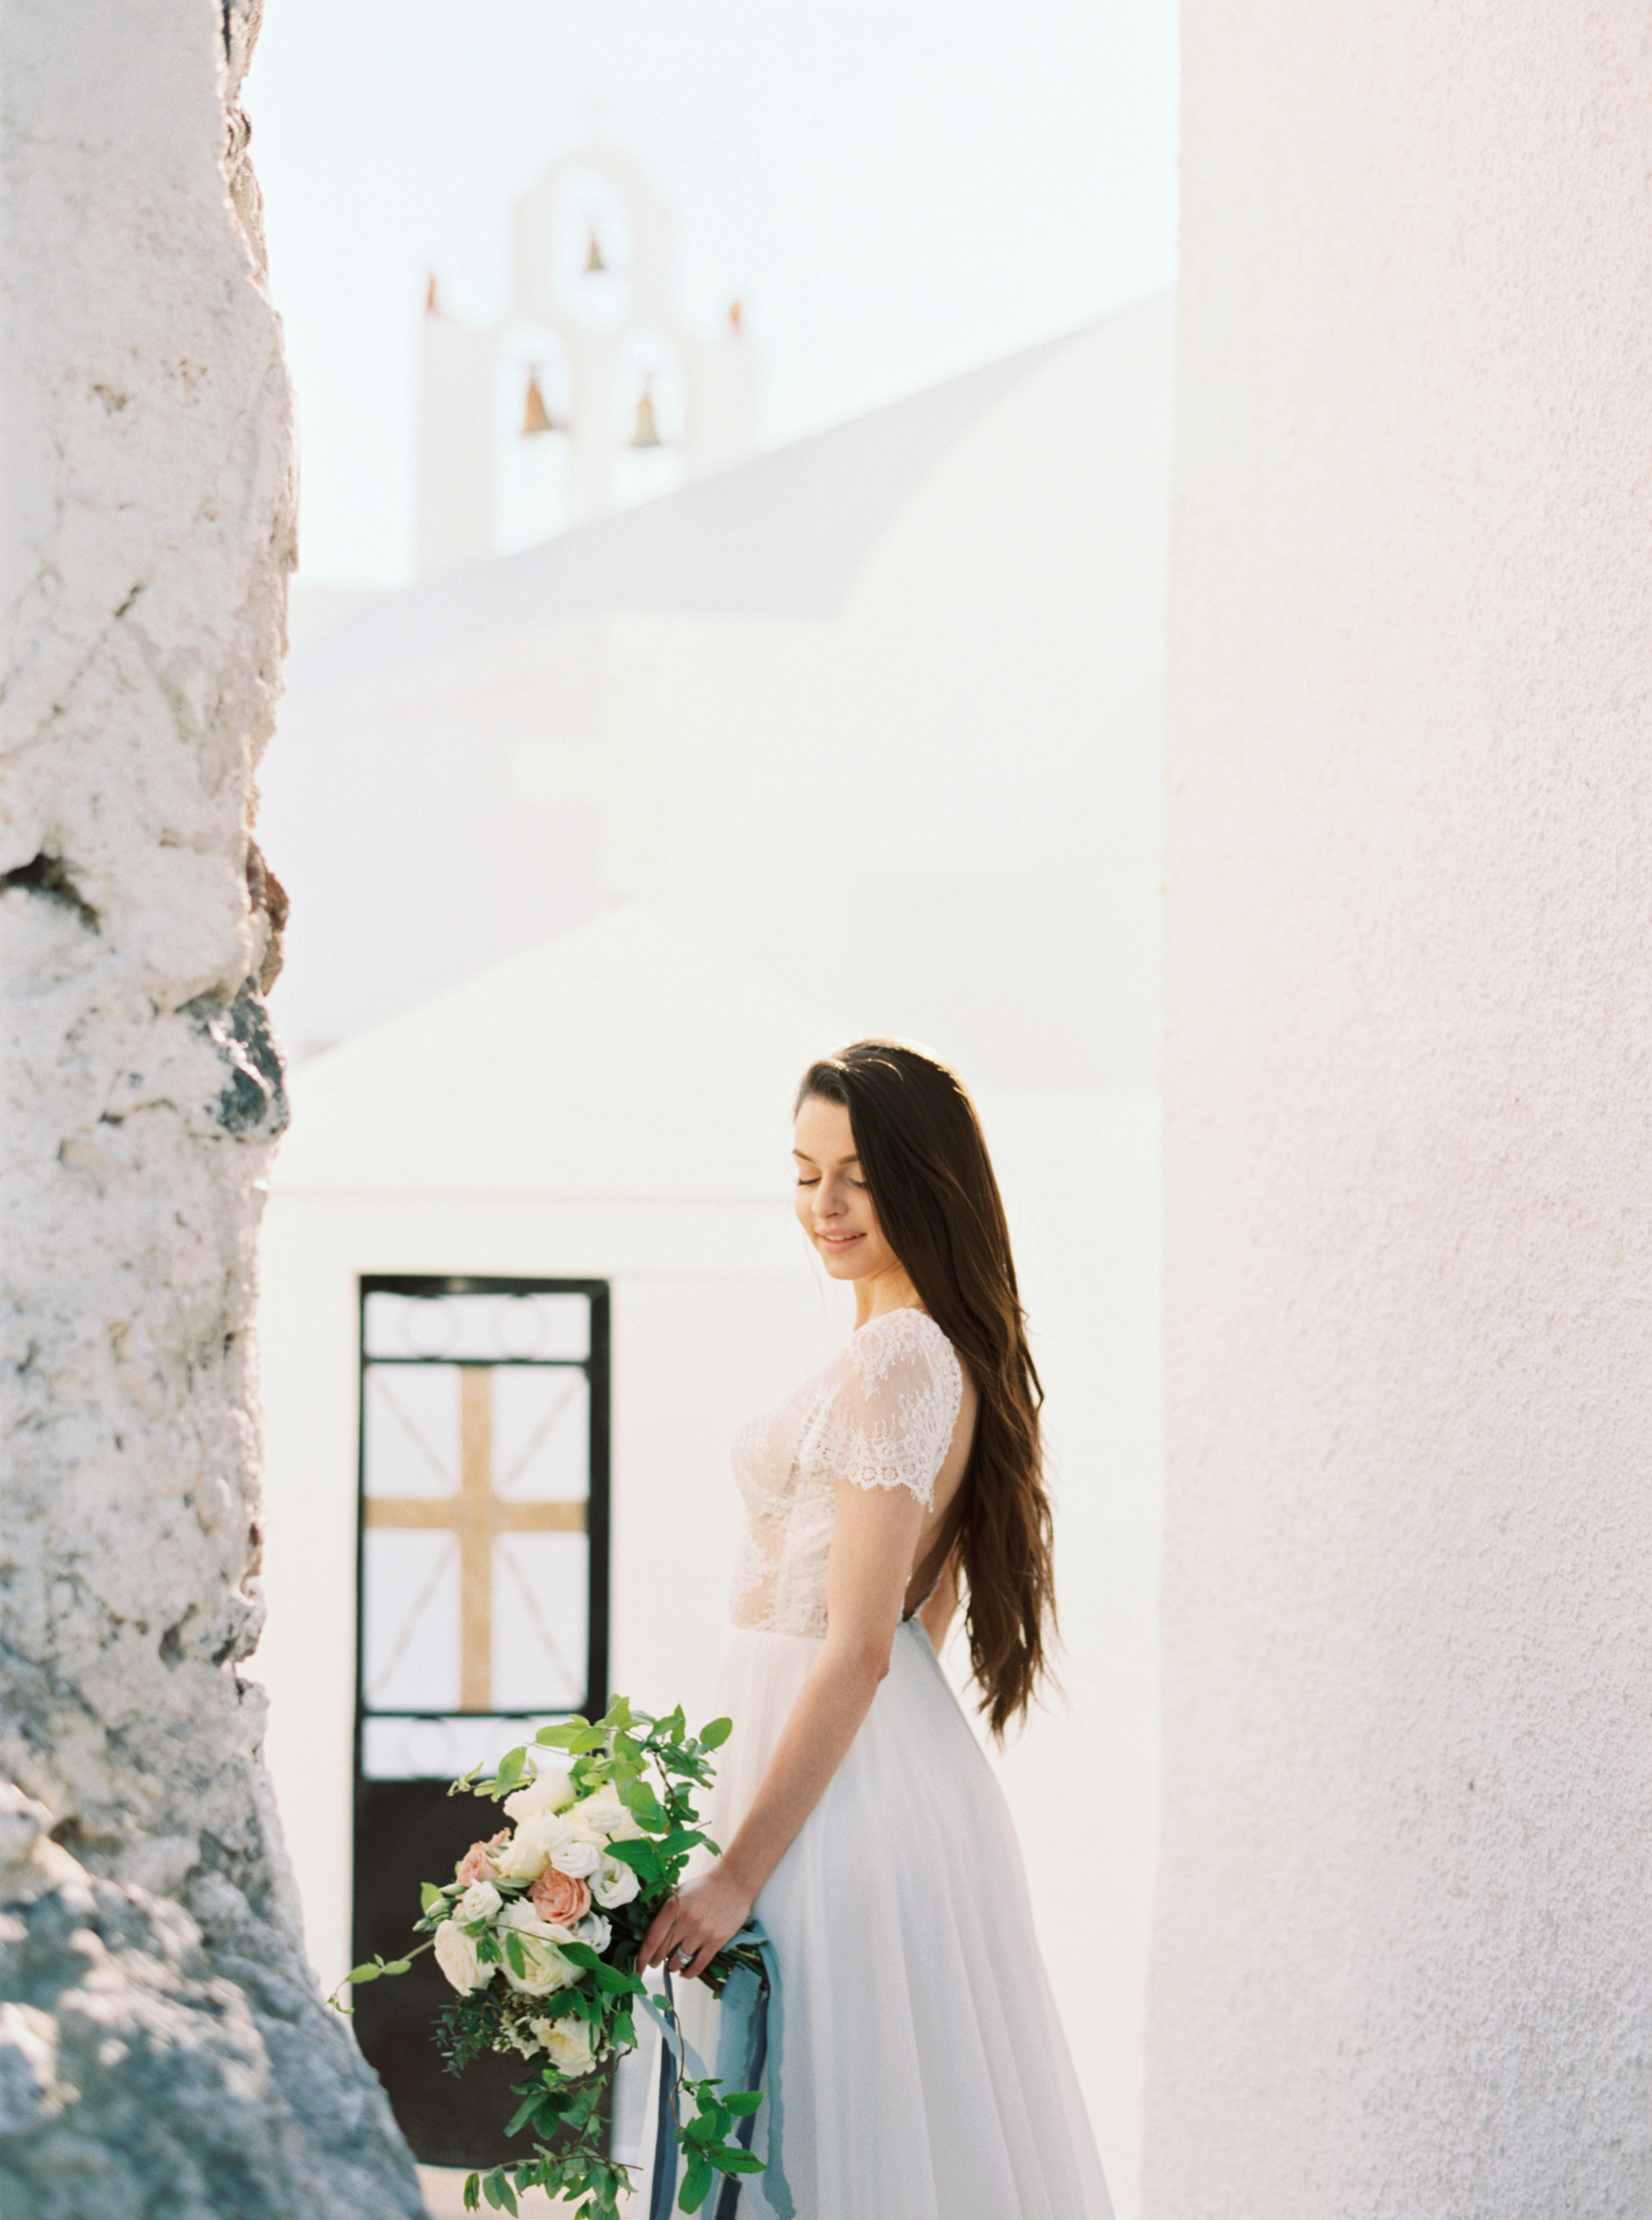 trynhphoto-photographer-destination-Santorini-Mykonos-Italy-France-wedding-photographer-destination-weddingplanner-43.jpg